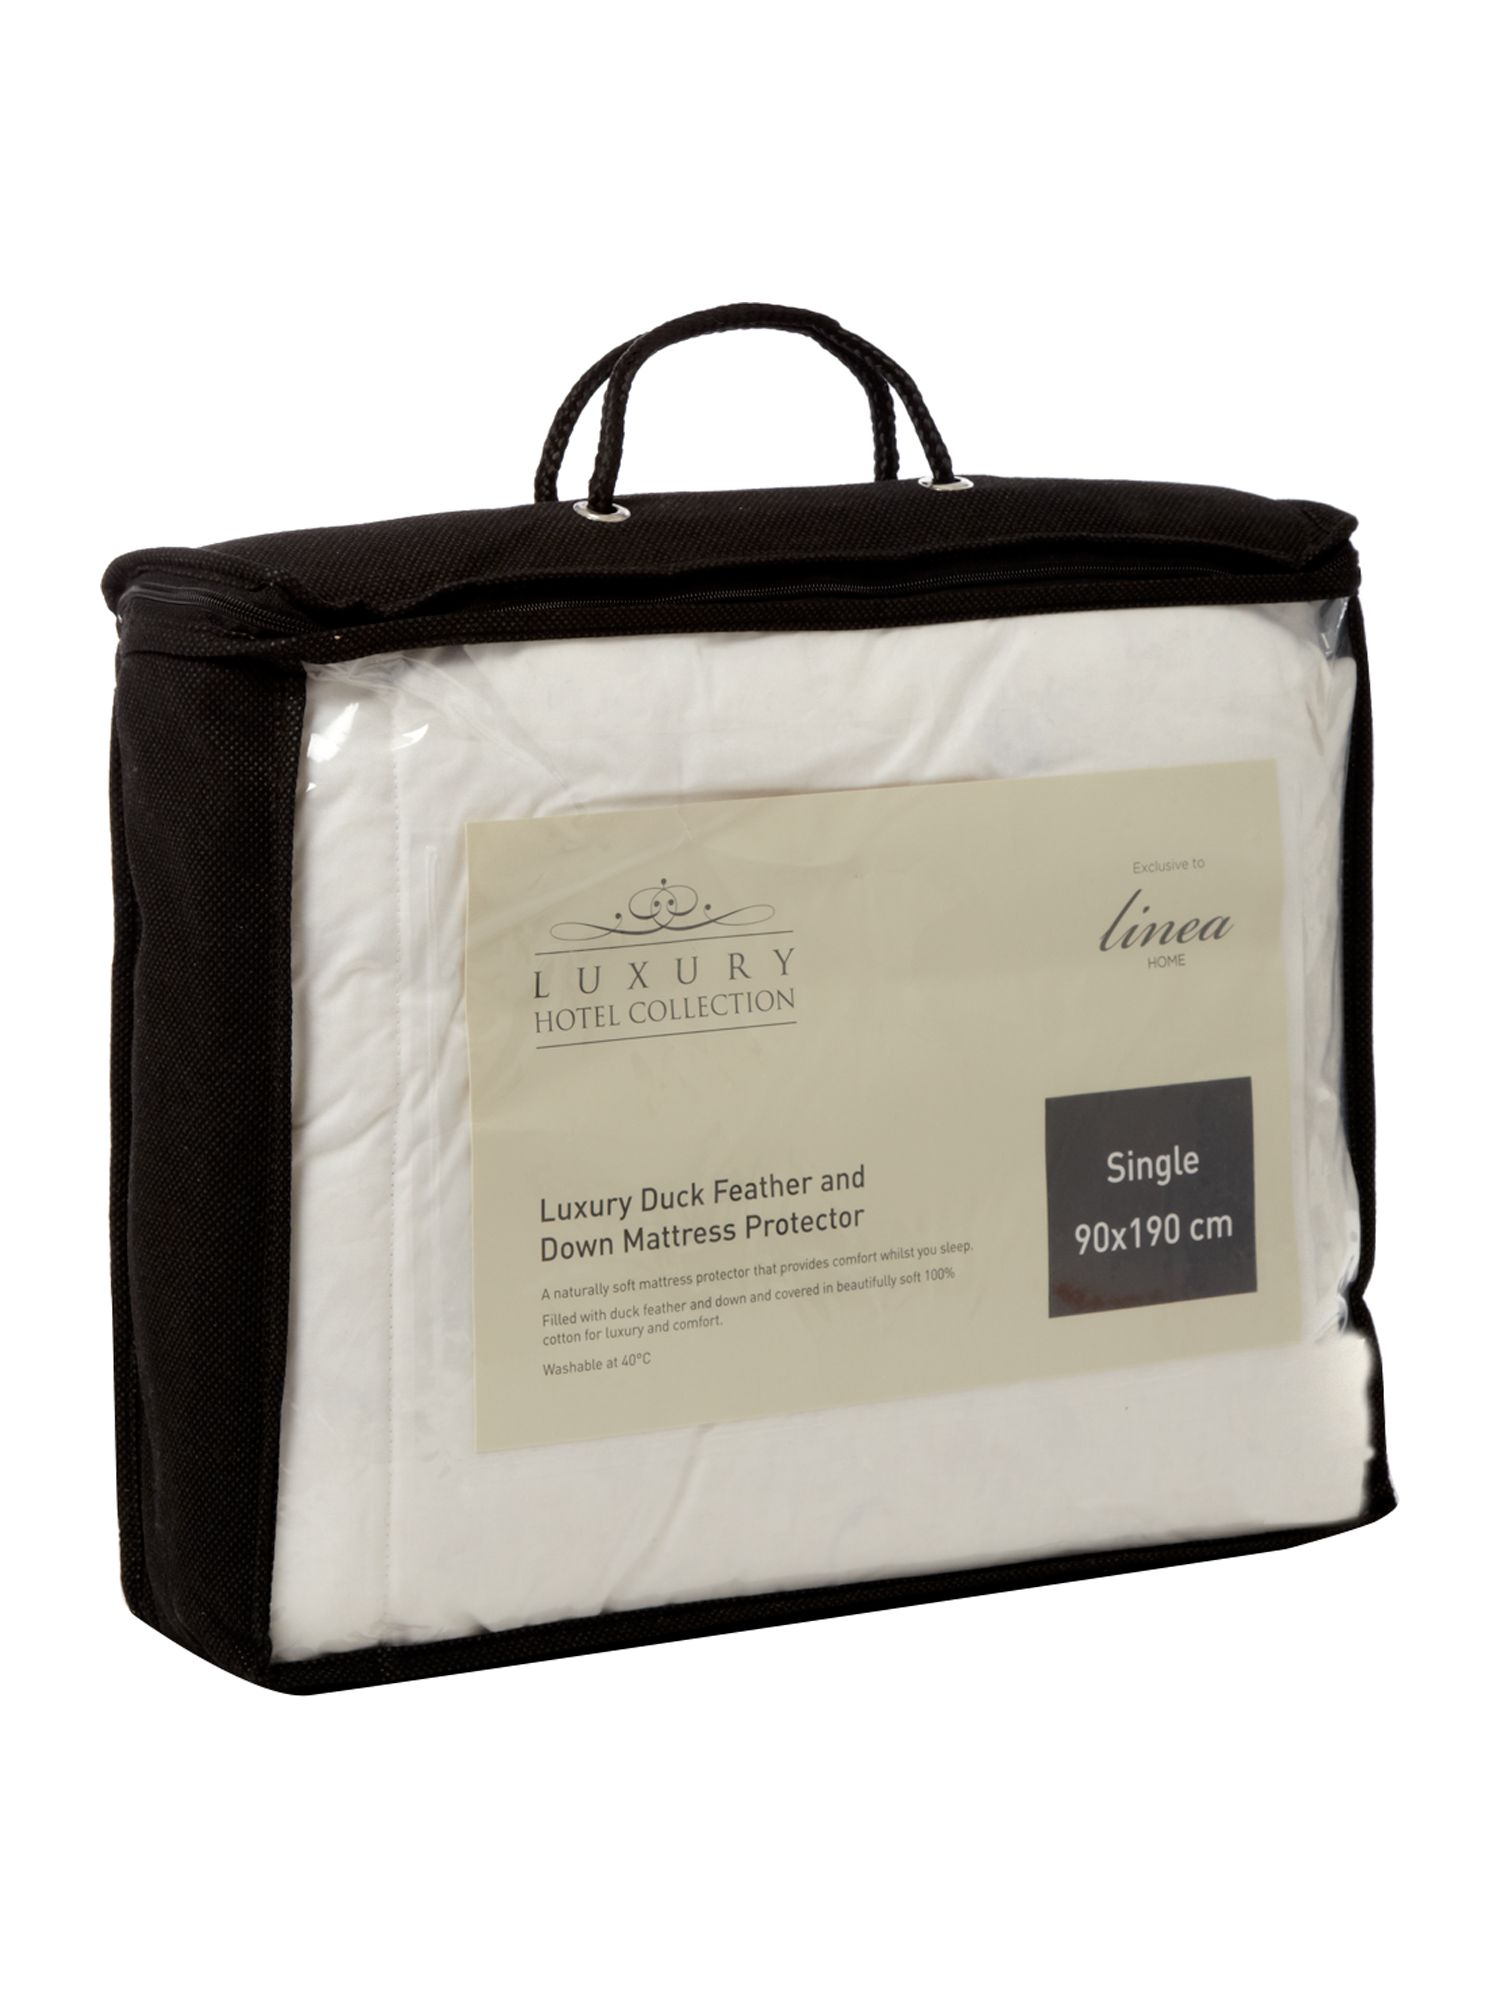 Duck feather & down mattress protectors